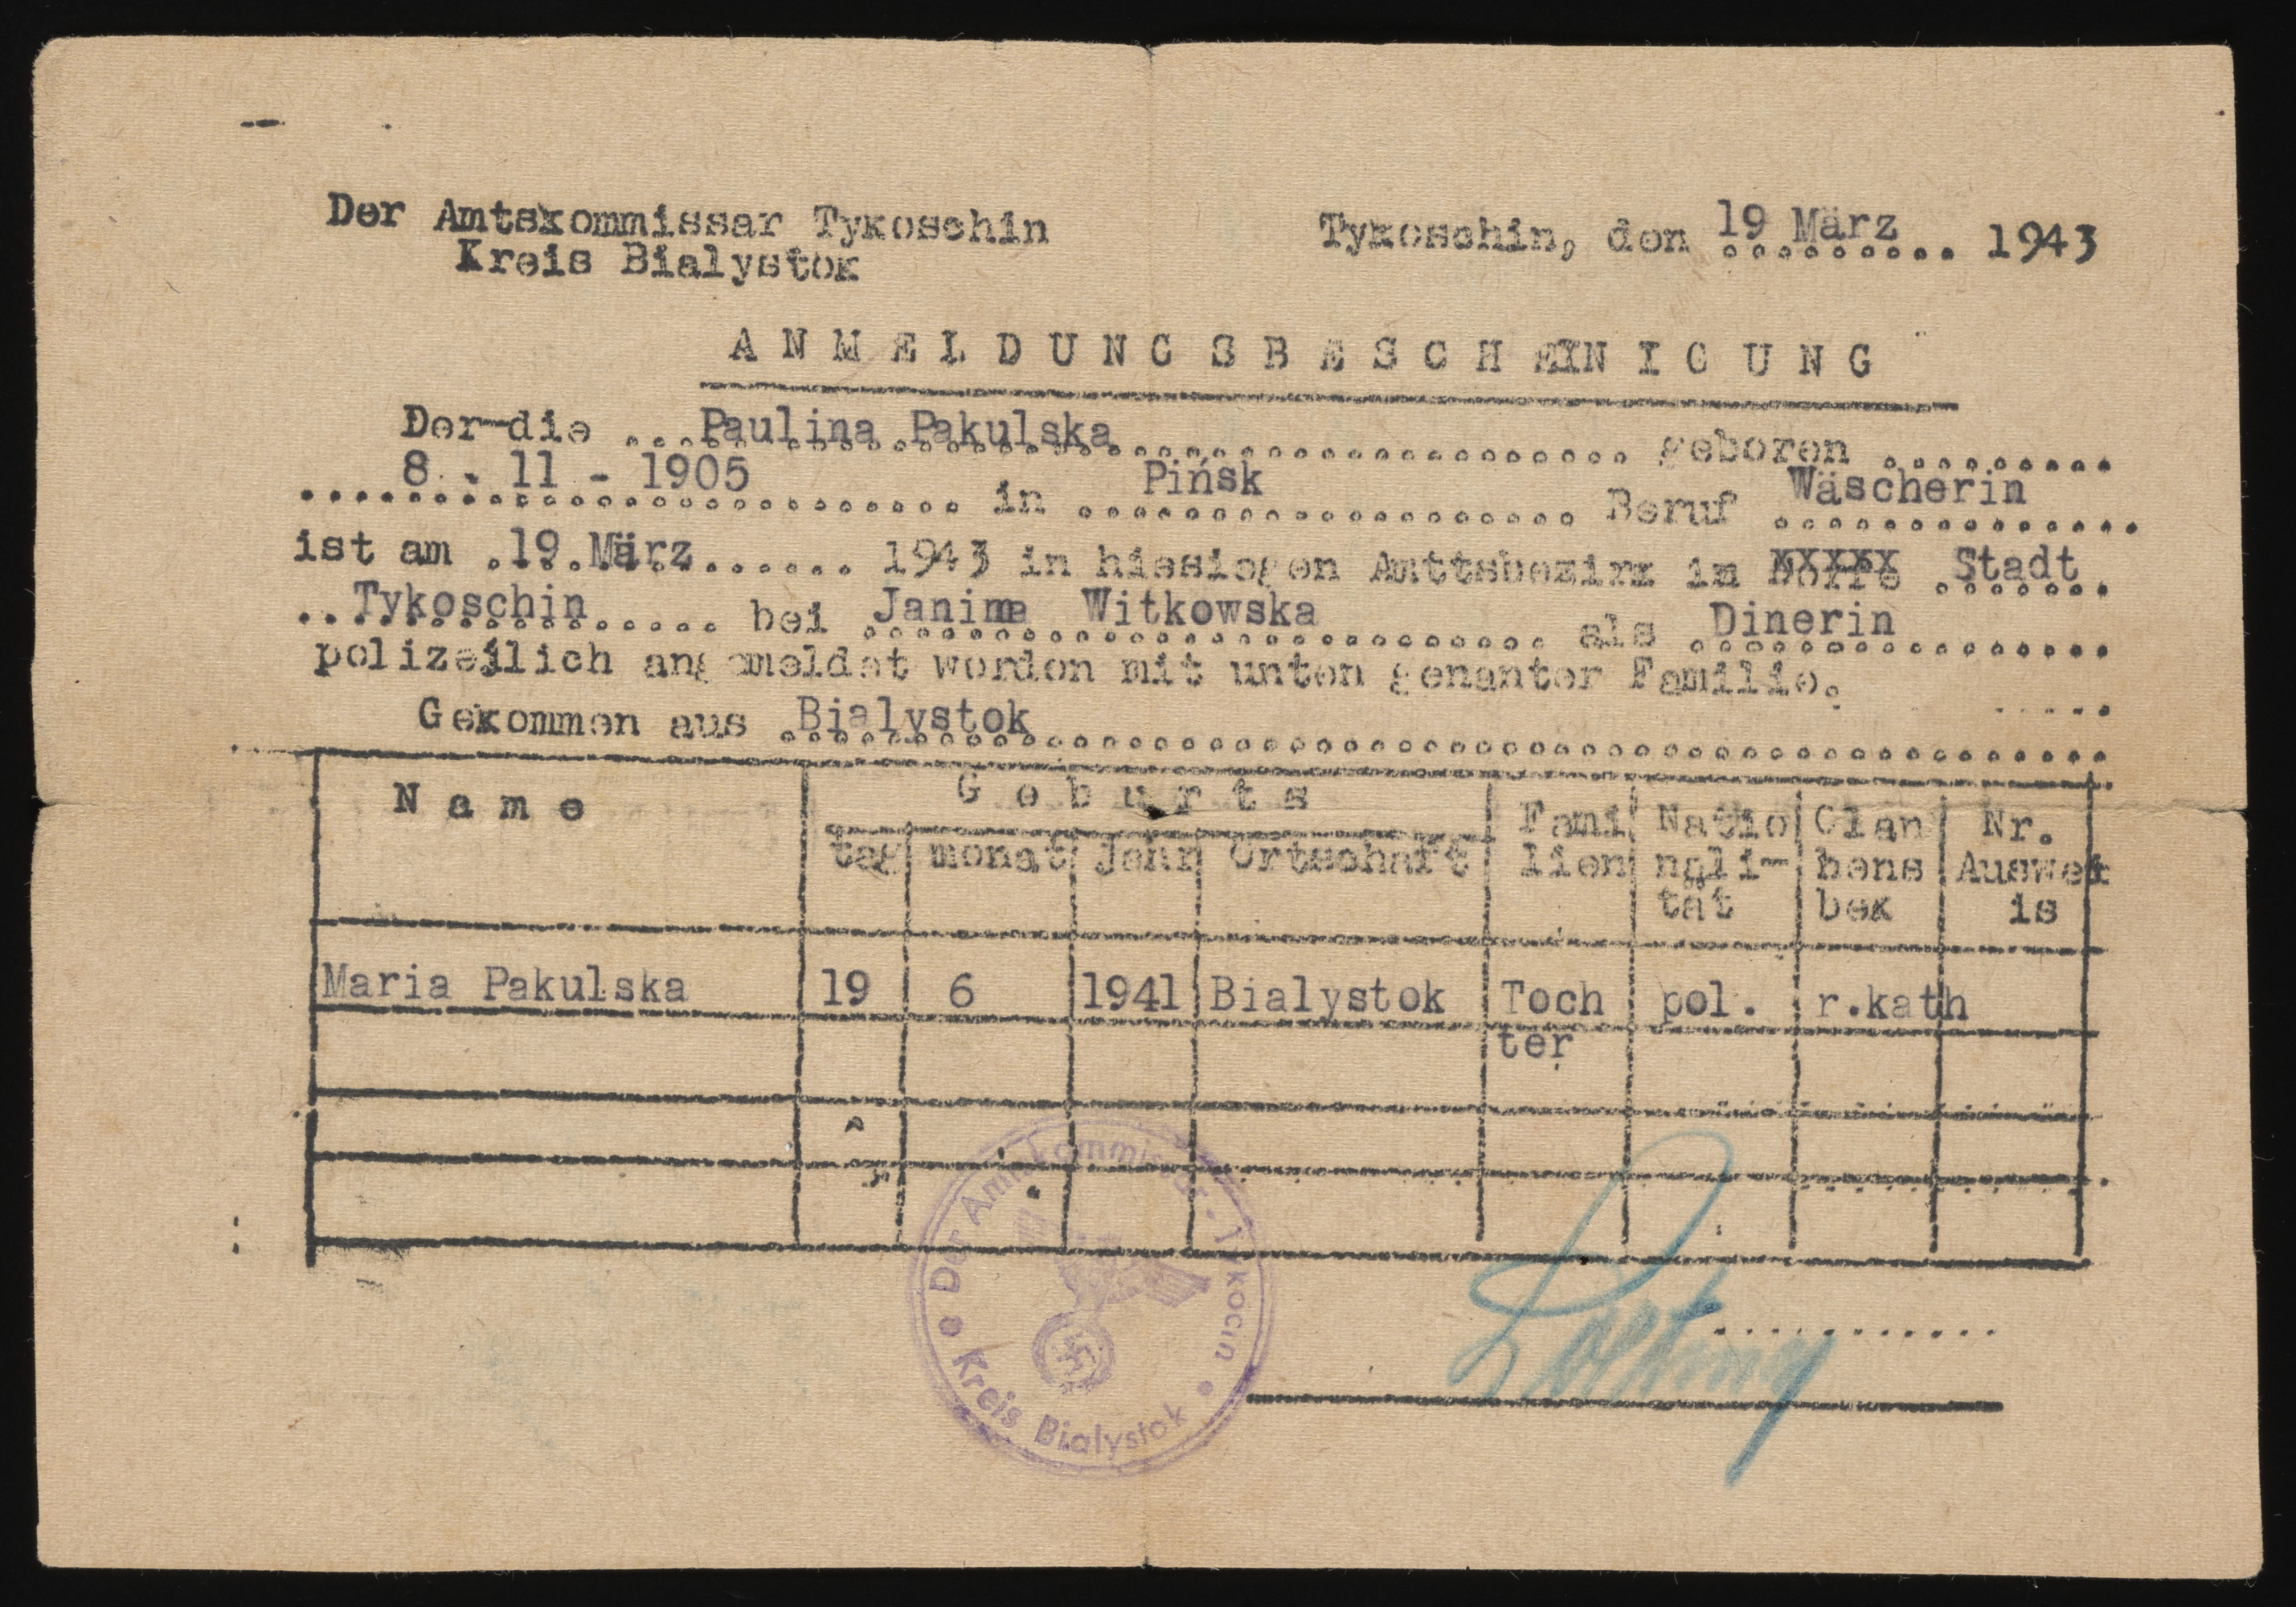 Certificate of residence issued to Bela Rozenszajn, who was living in hiding under the name of Paulina Pakulska.  The document states that she and her daughter, Maria, reside with Janina Witkowska in Tykocin.